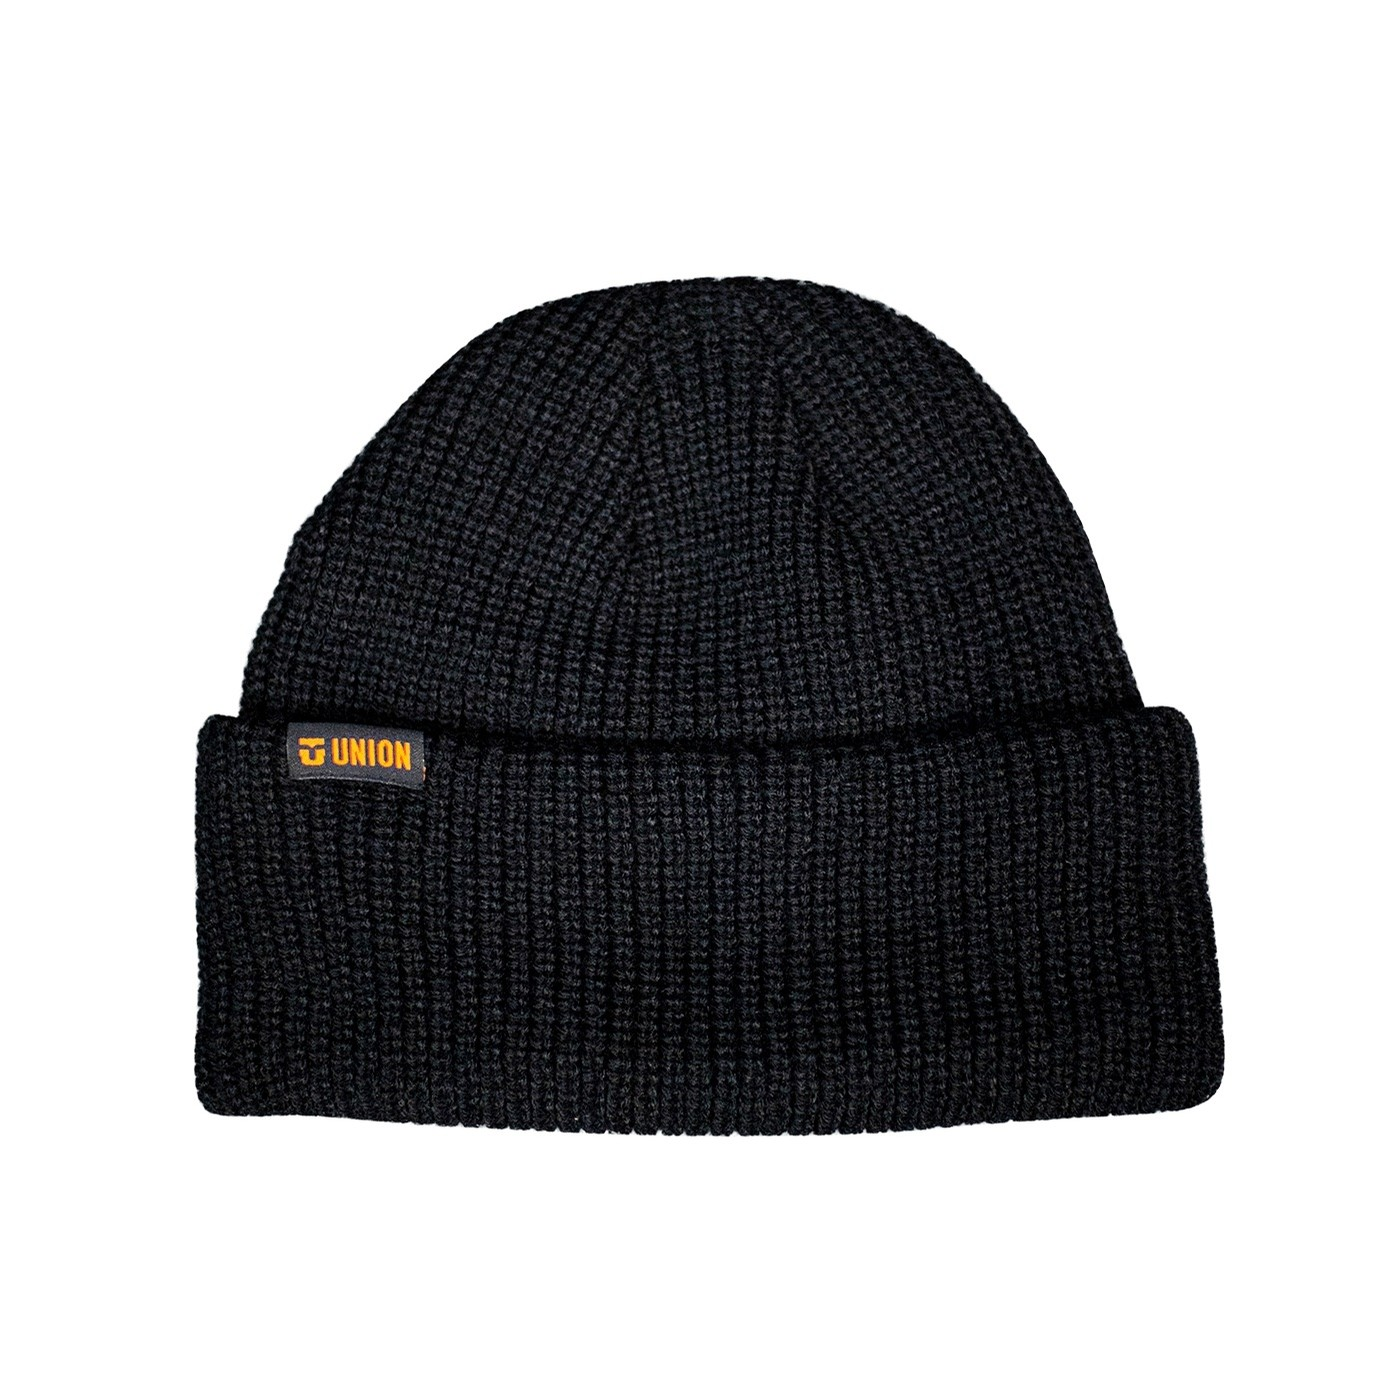 Union Binding Company Union Beanie (Black)